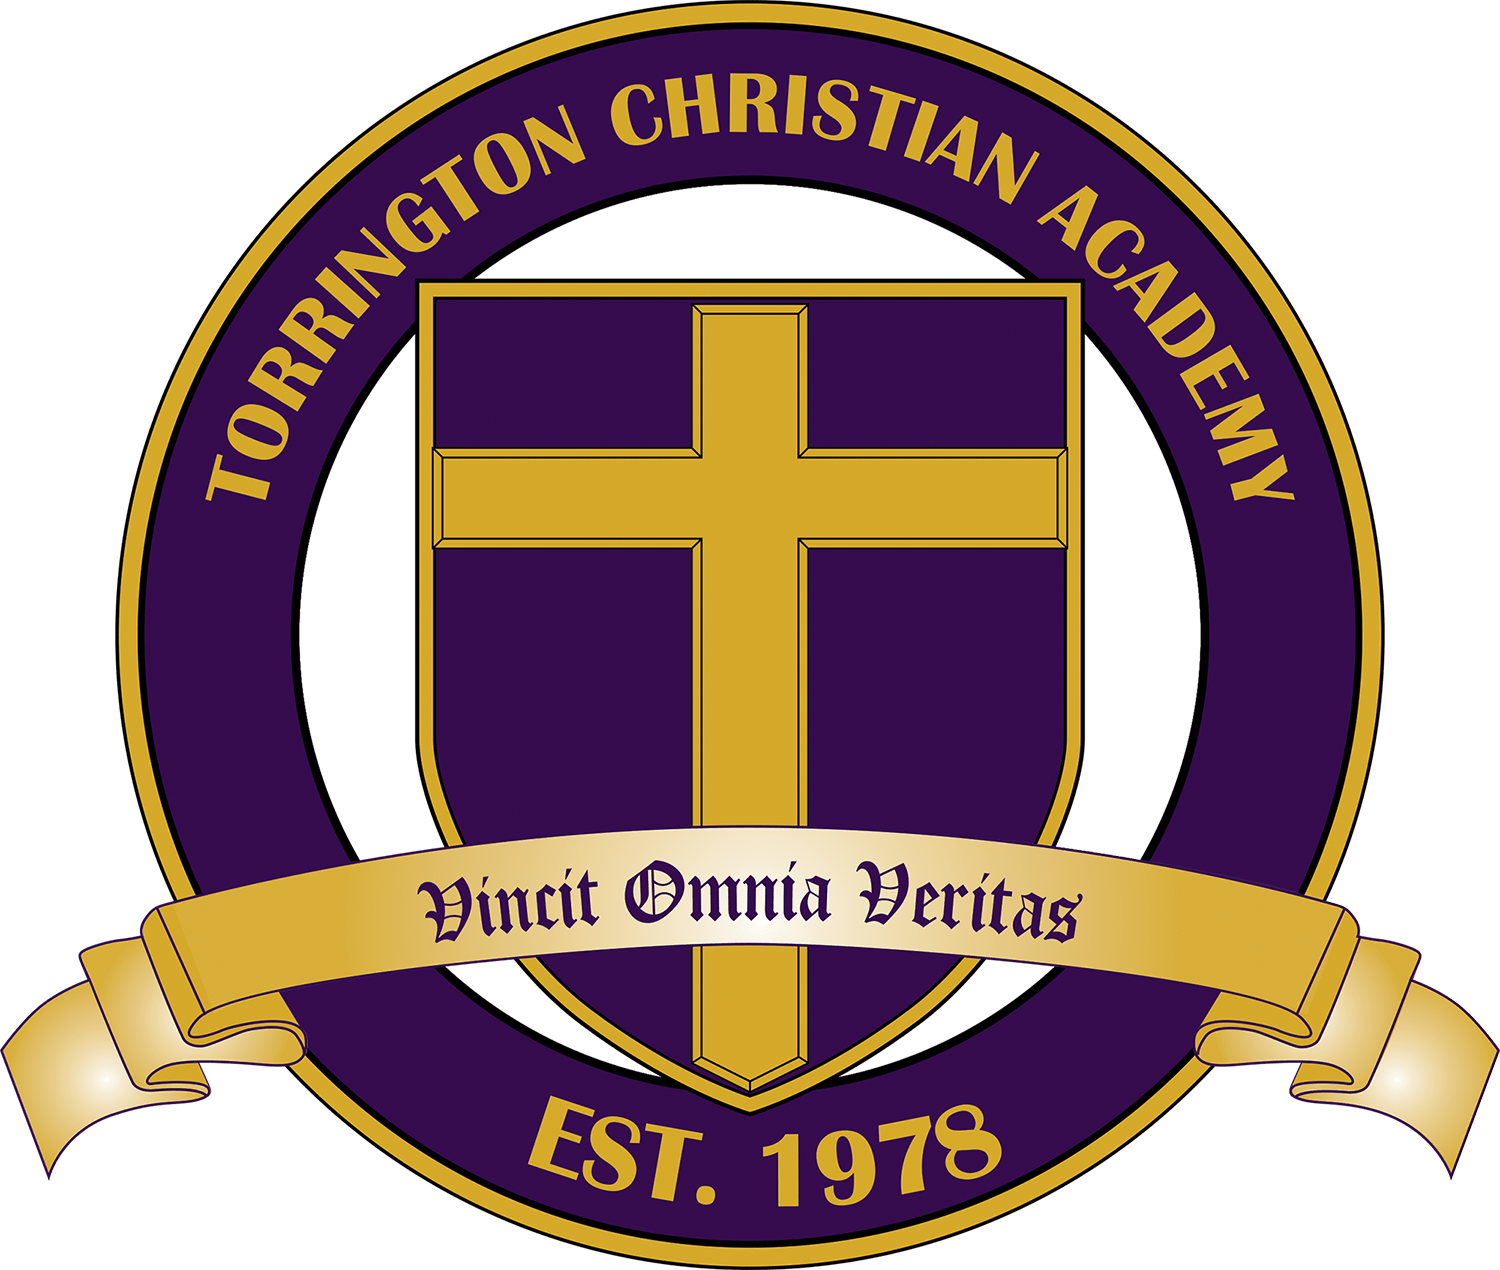 Torrington Christian Academy